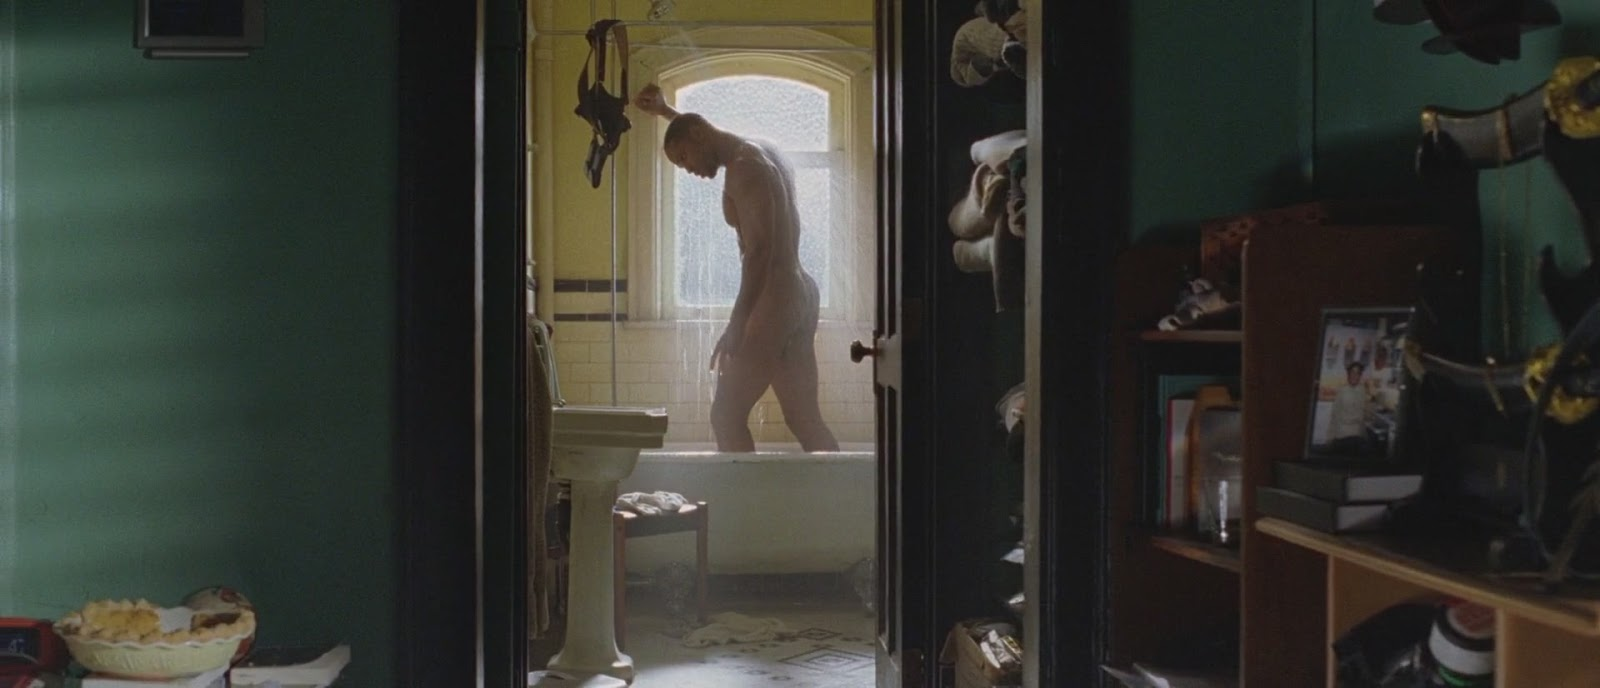 Clip of will smith nude shower scene in i robot photo 250